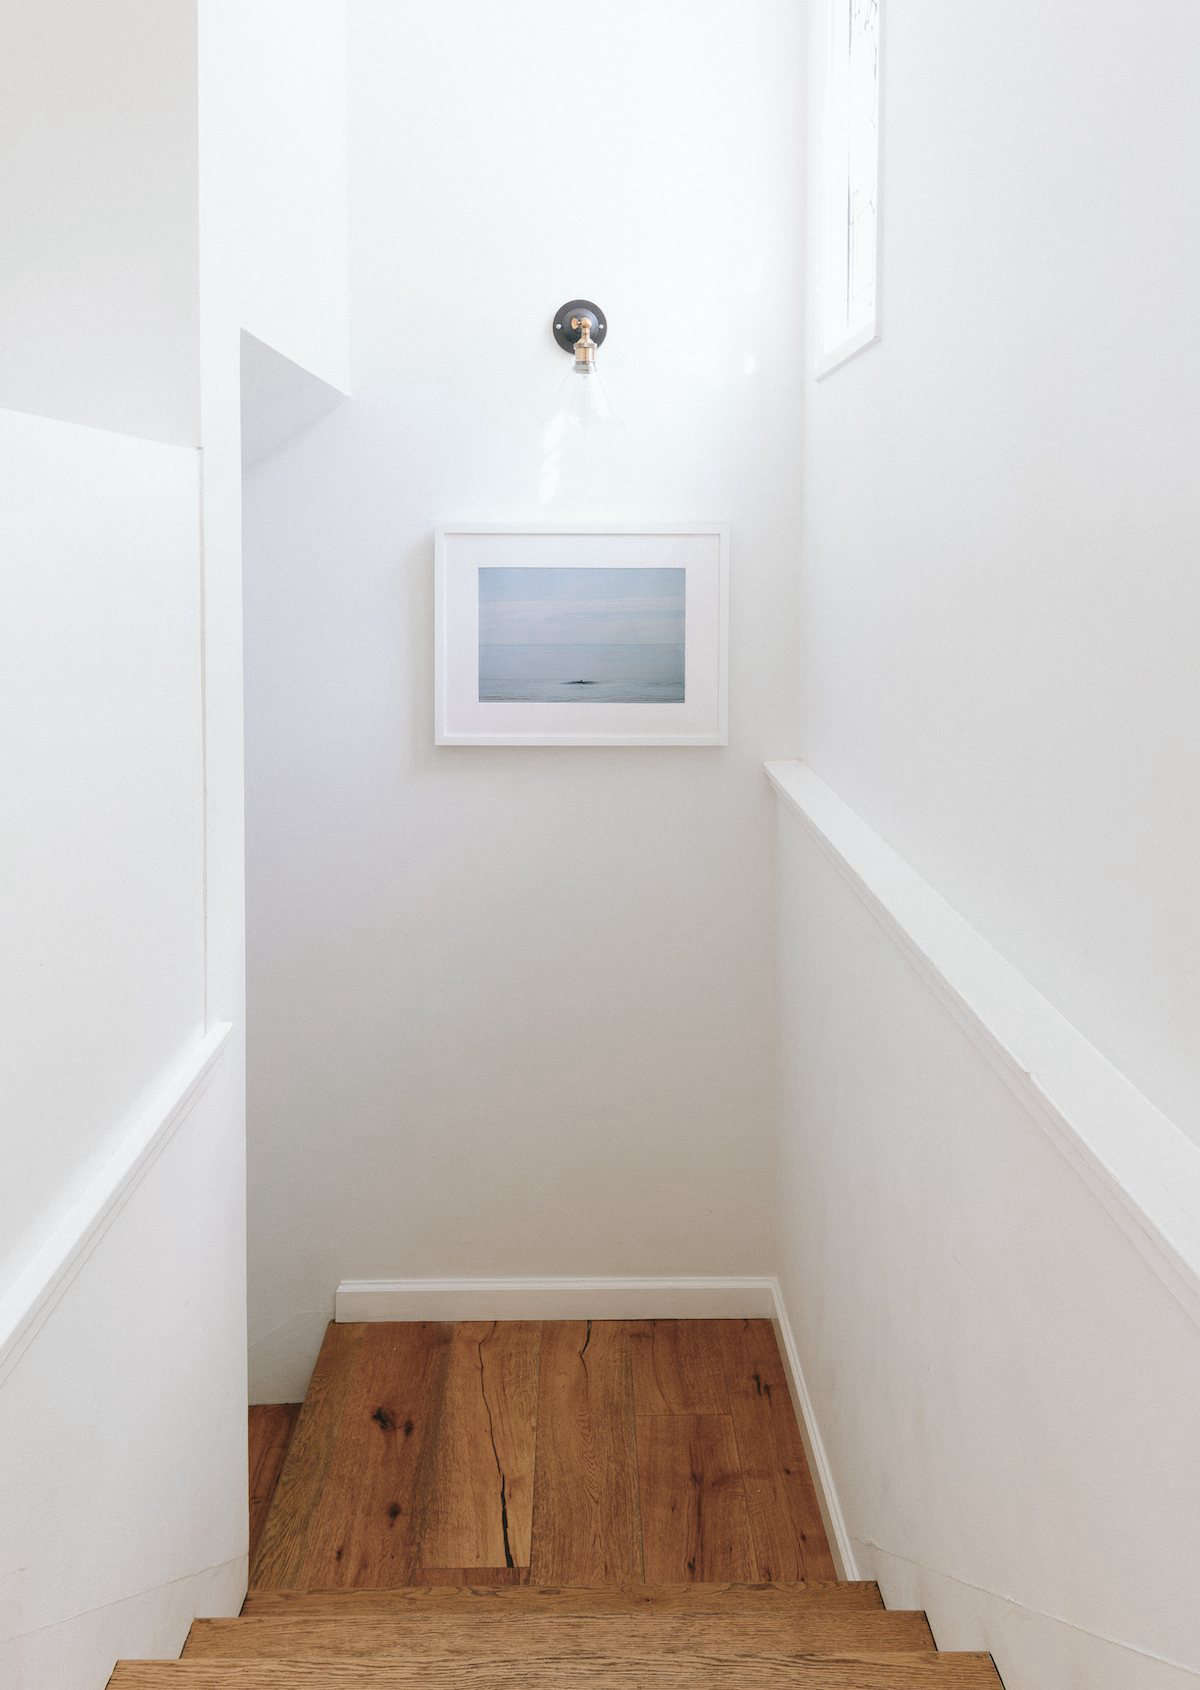 The artwork in the stairwell is an Emma Wood Print by photographer Marc Gabor—a collaboration between Jenni Kayne and Tappan ($655, framed). Hunter found the sconce on Amazon. The floors throughout the house are brushed white oak.